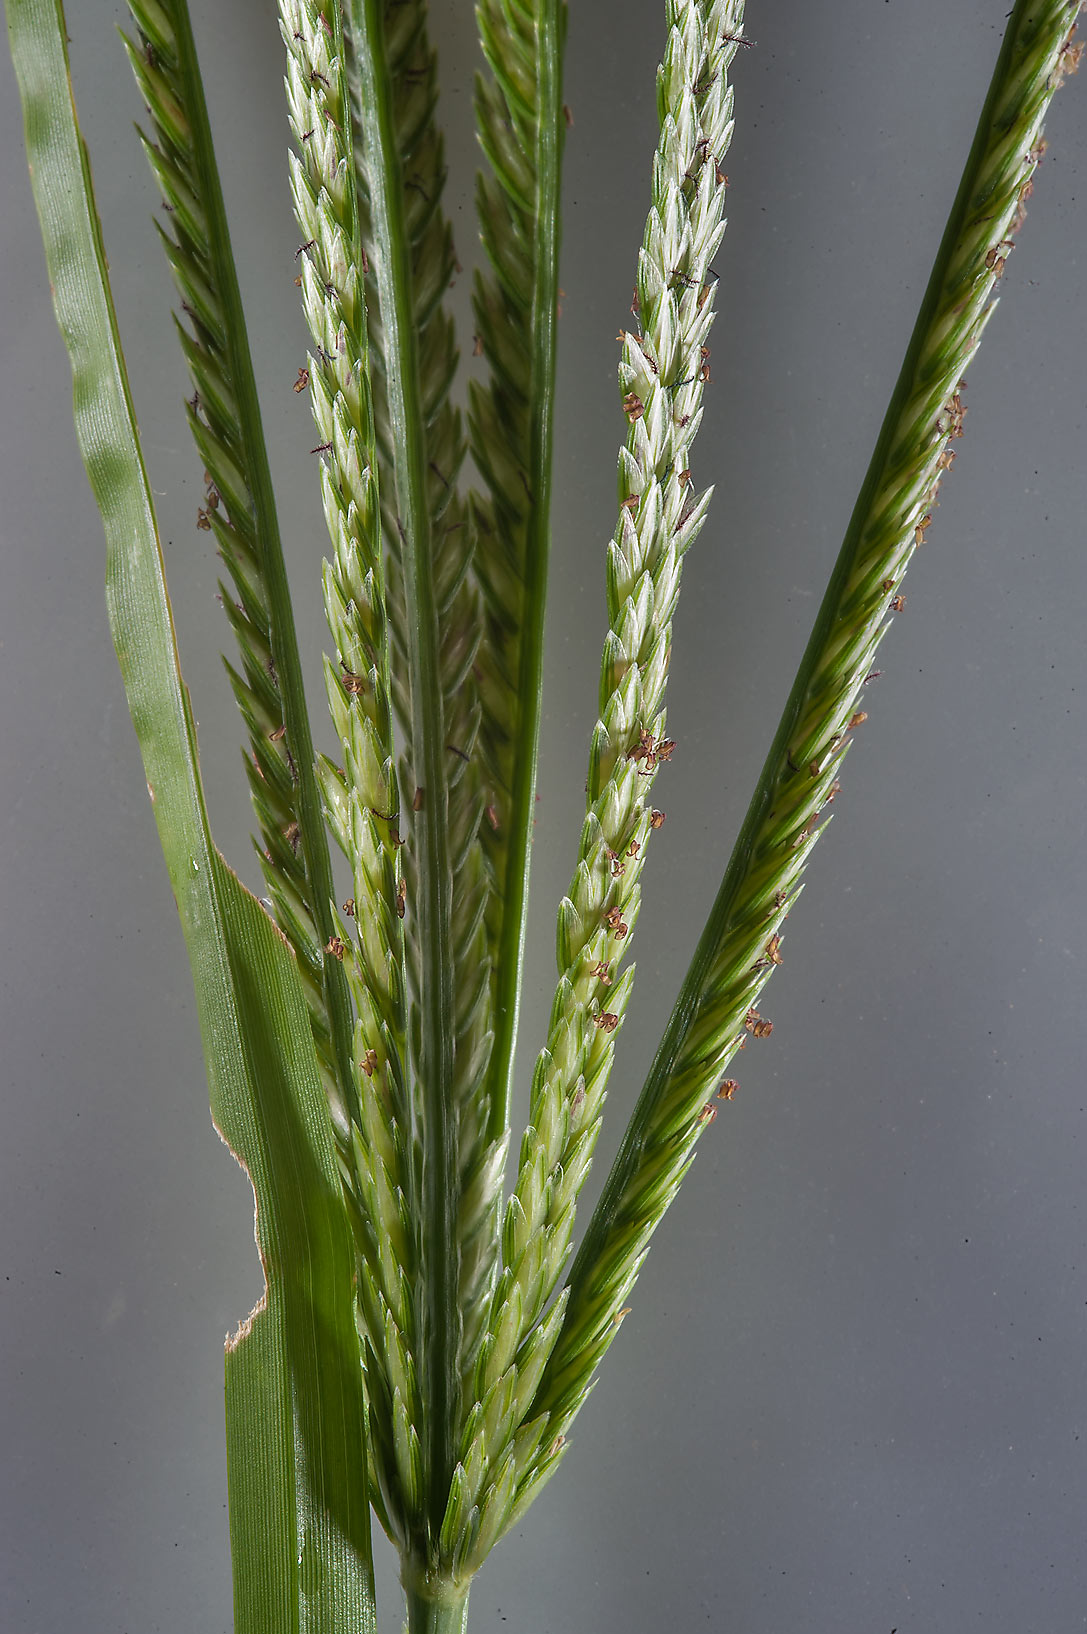 Close up of goosegrass (finger millet, Eleusine...in Irkhaya (Irkaya) Farms. Qatar